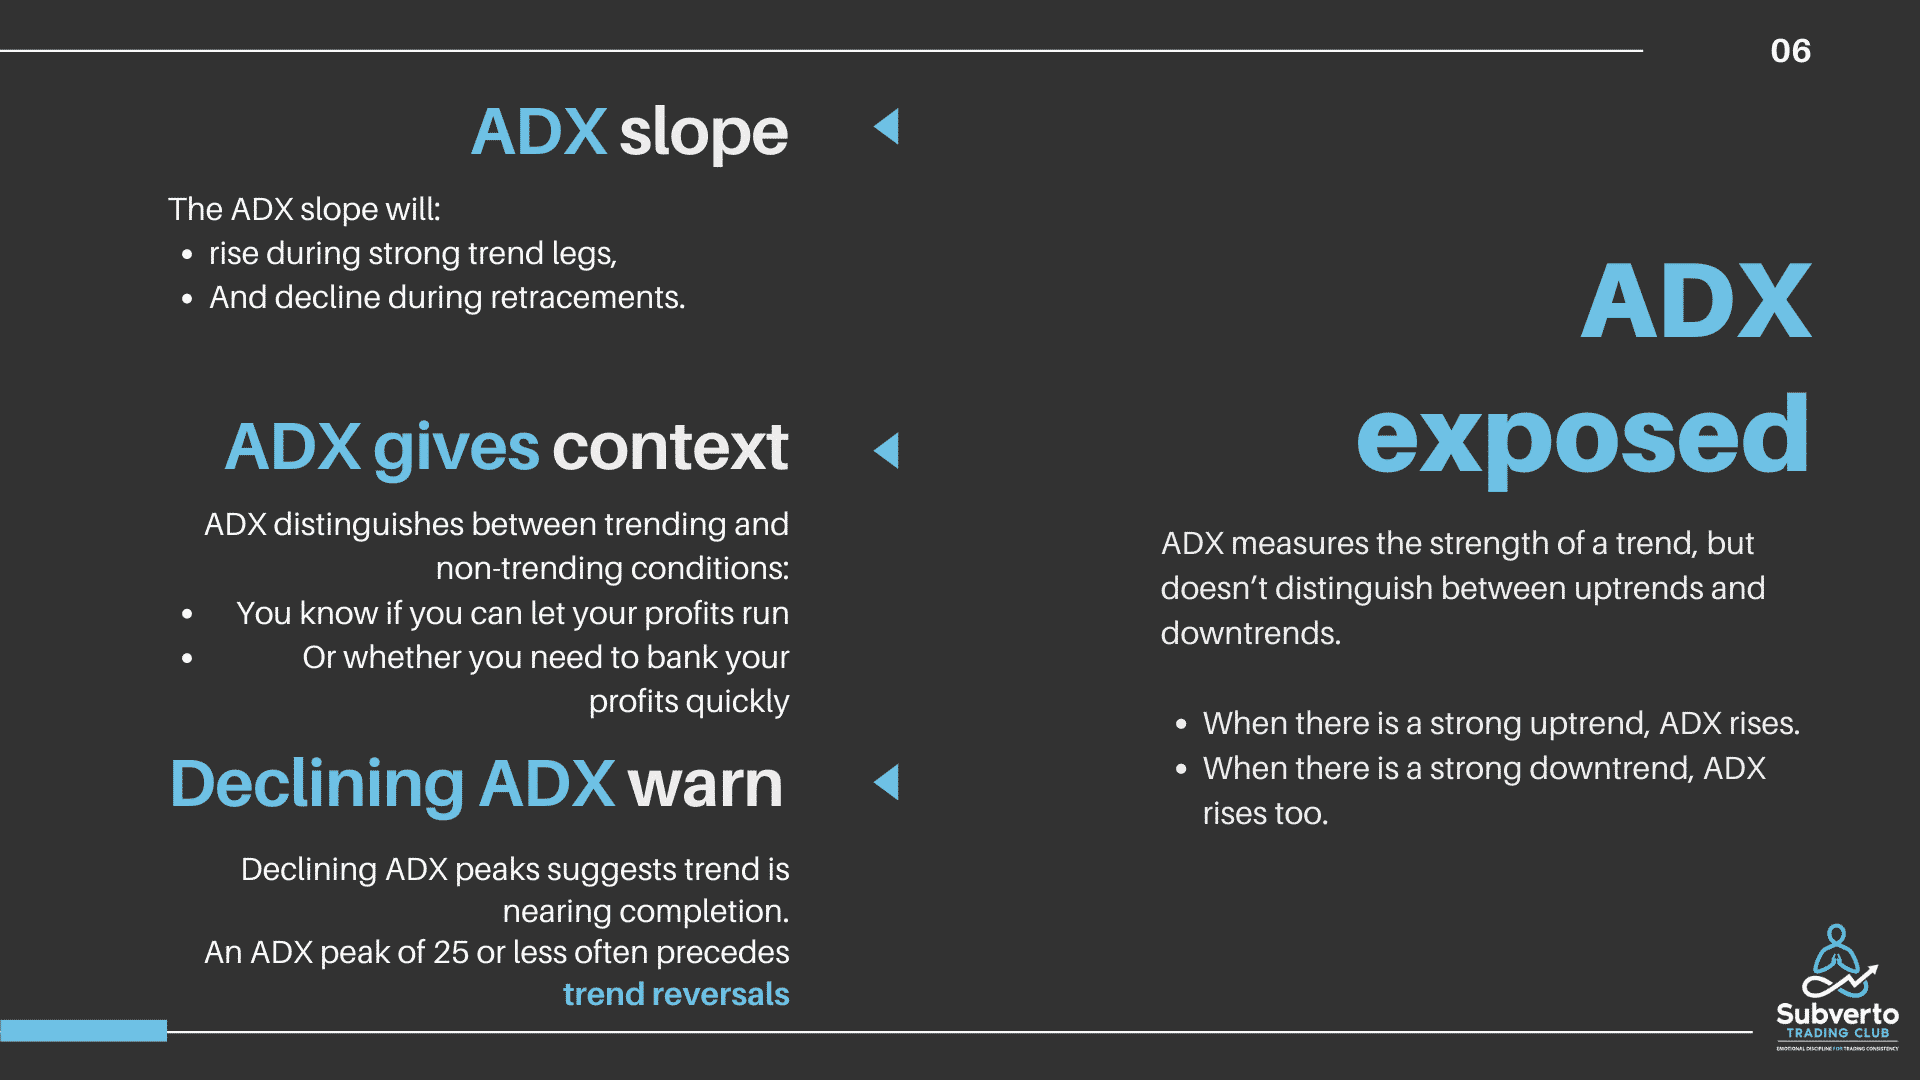 ADX explained